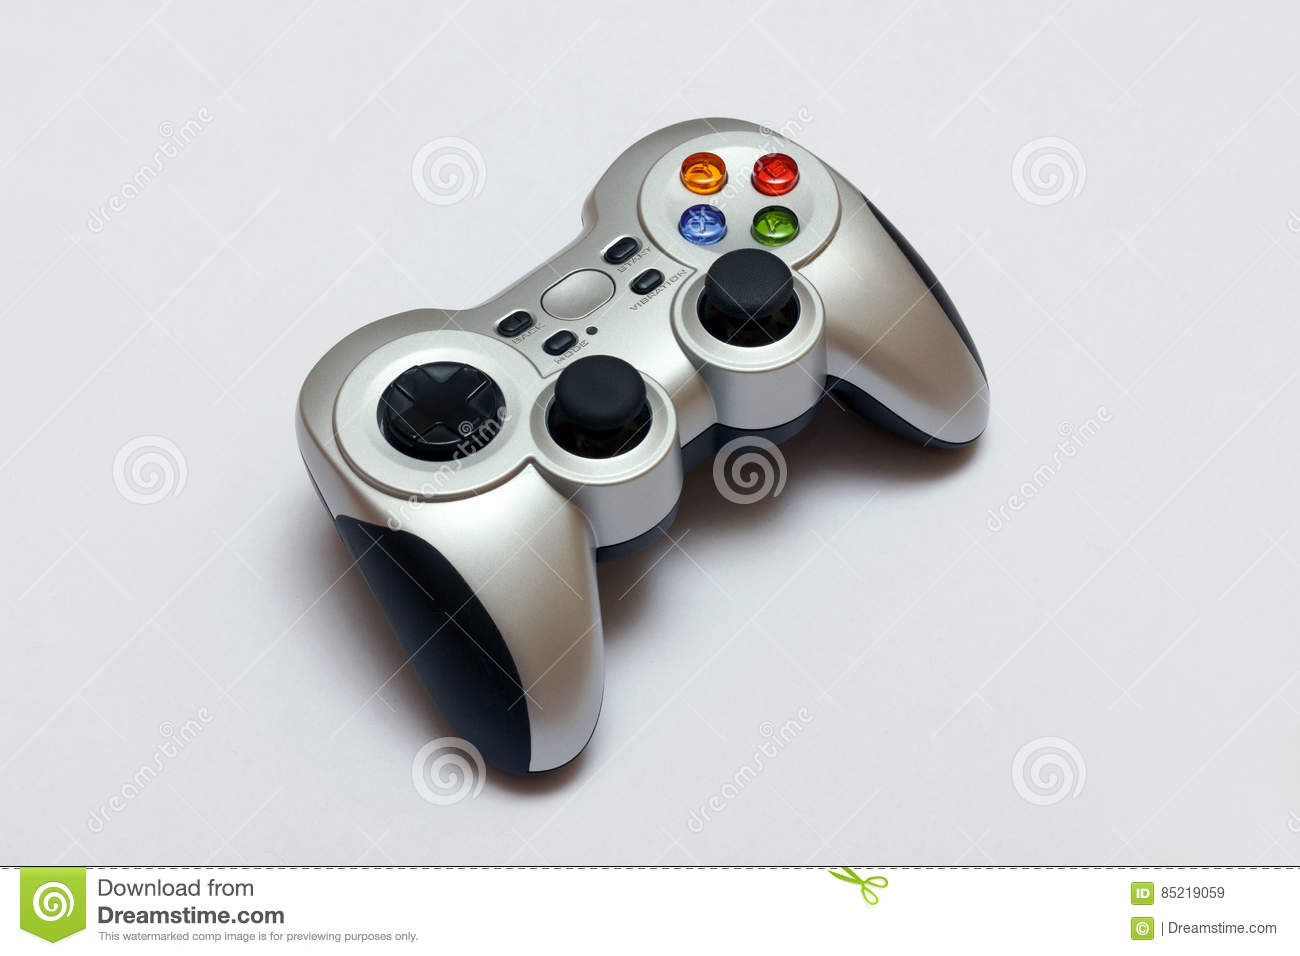 PC Wireless Game Controller Gamepad Stock Image - Image of editorial